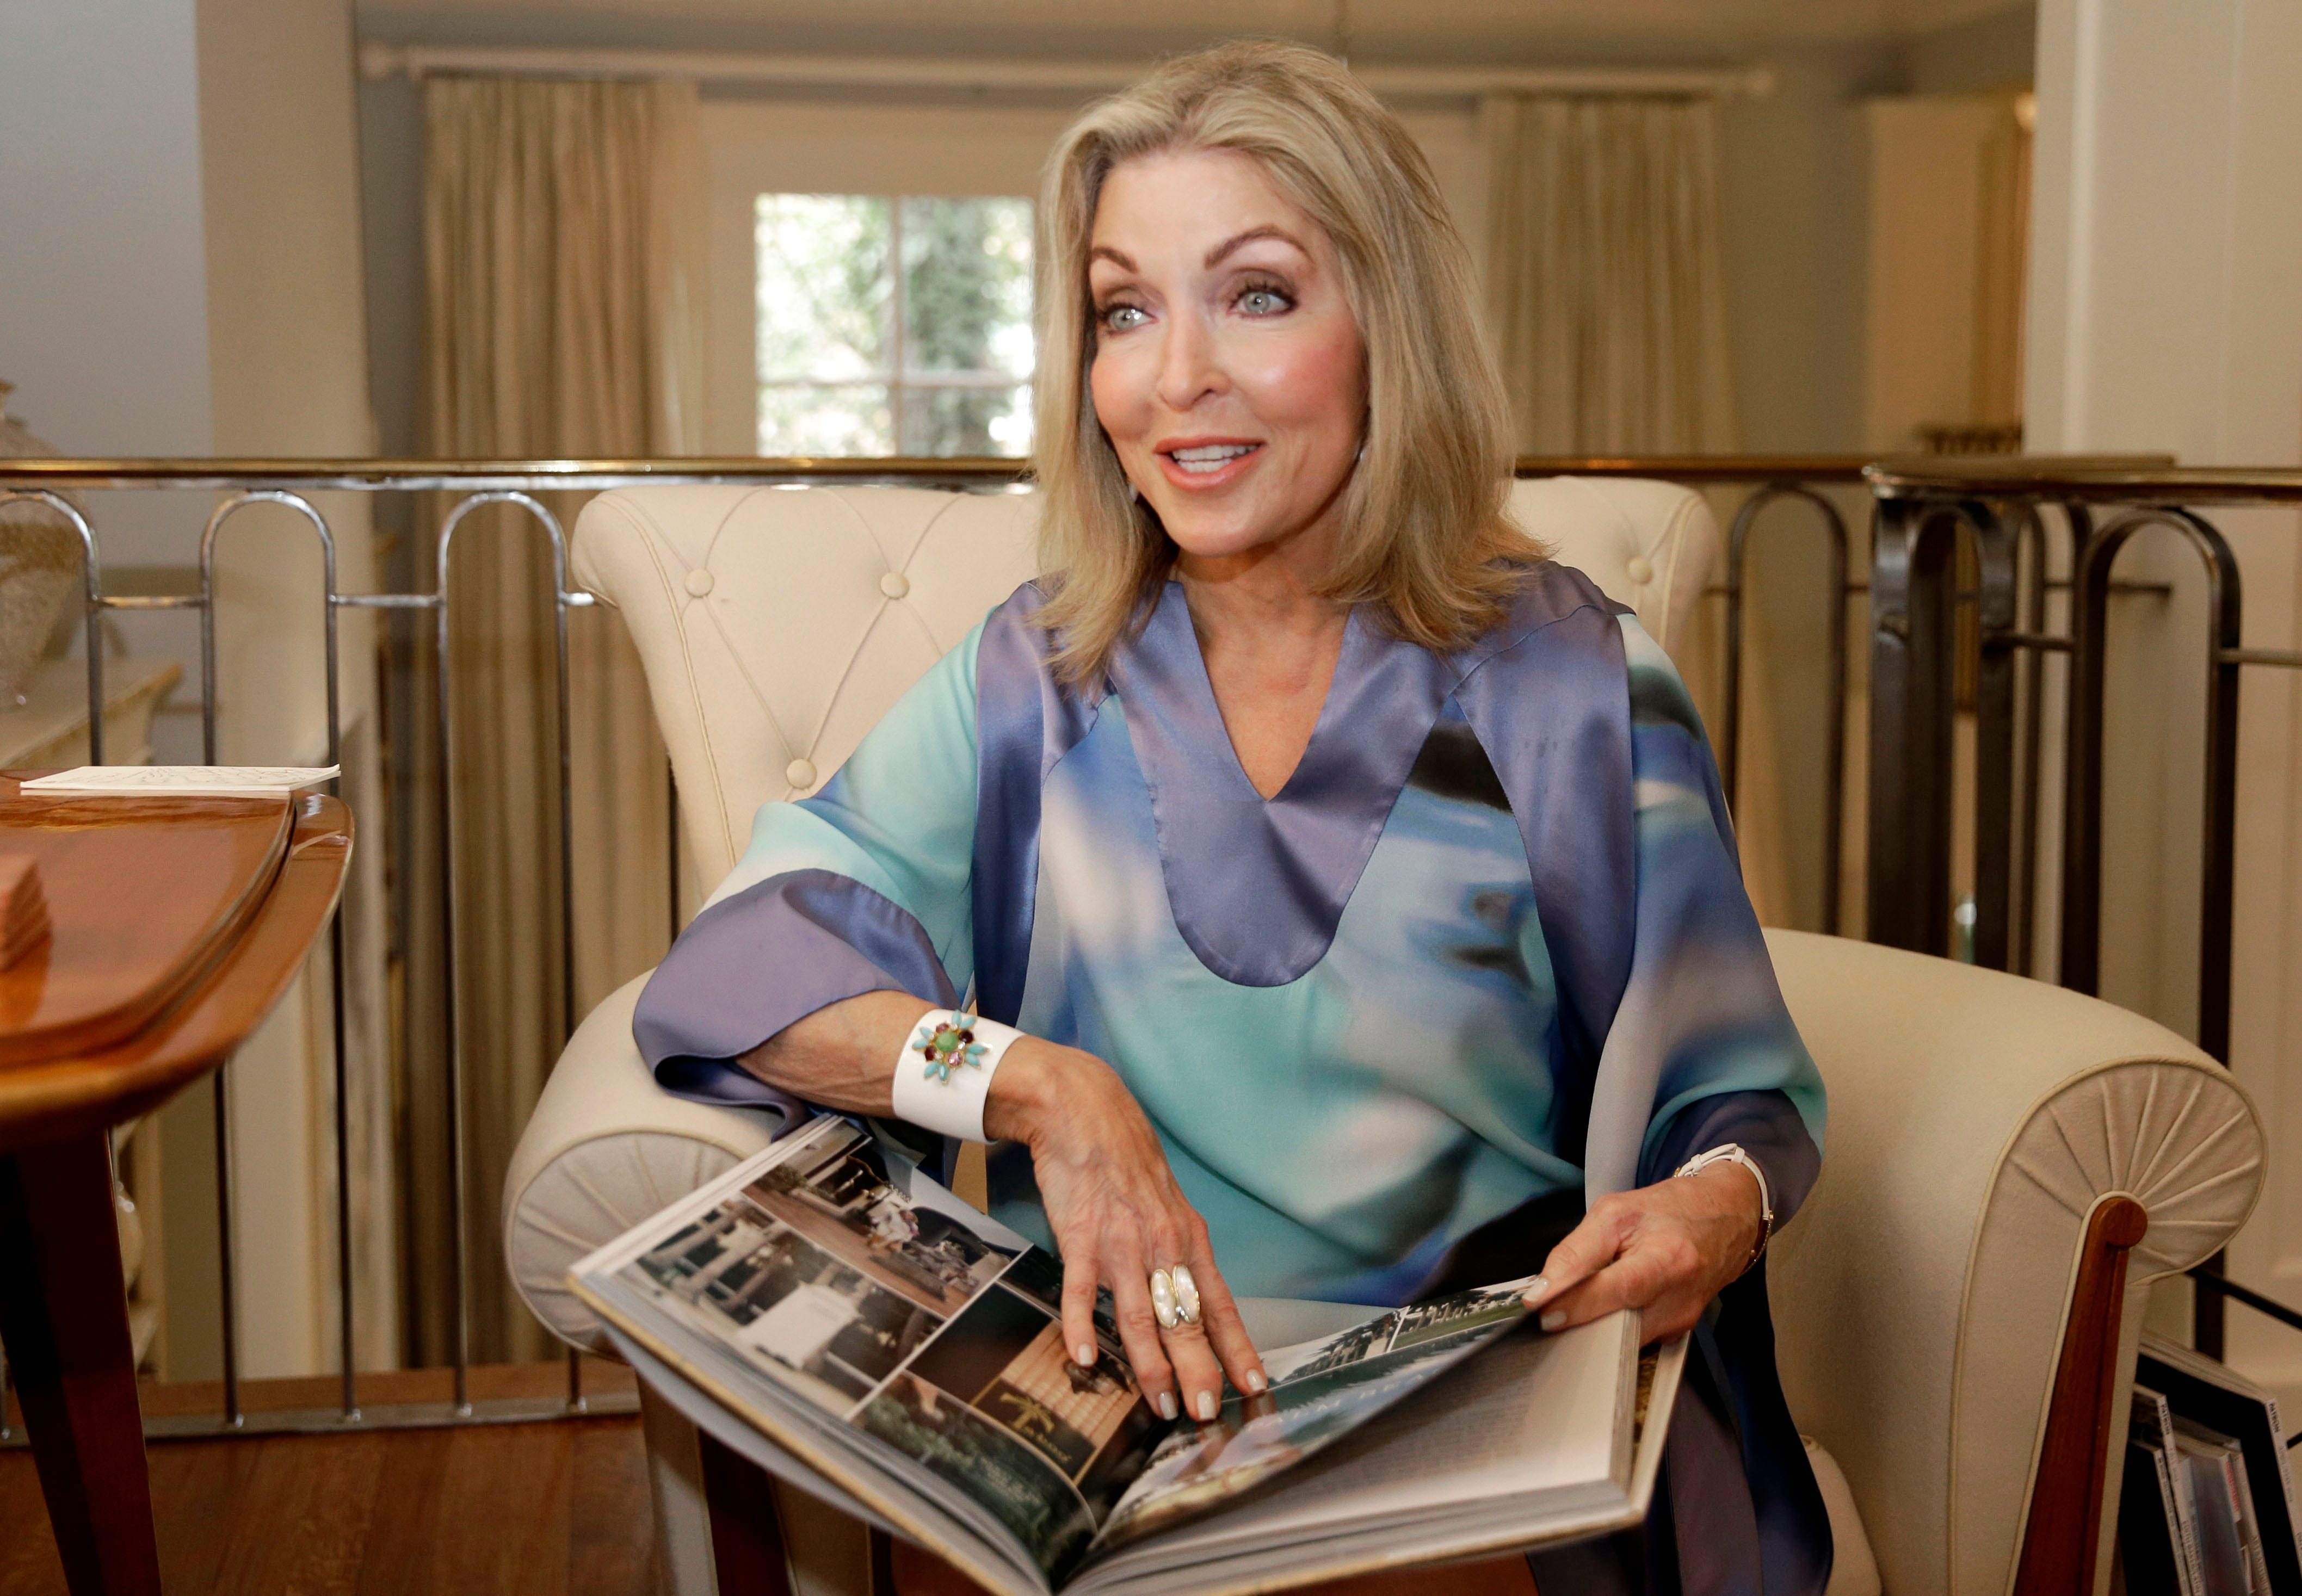 Interior Designer Jan Showers Holds Her Book U201cGlamorous Retreats,u201d At Her  Home In Dallas. Showers Encourages People To Take The Time To Design Their  Own ...